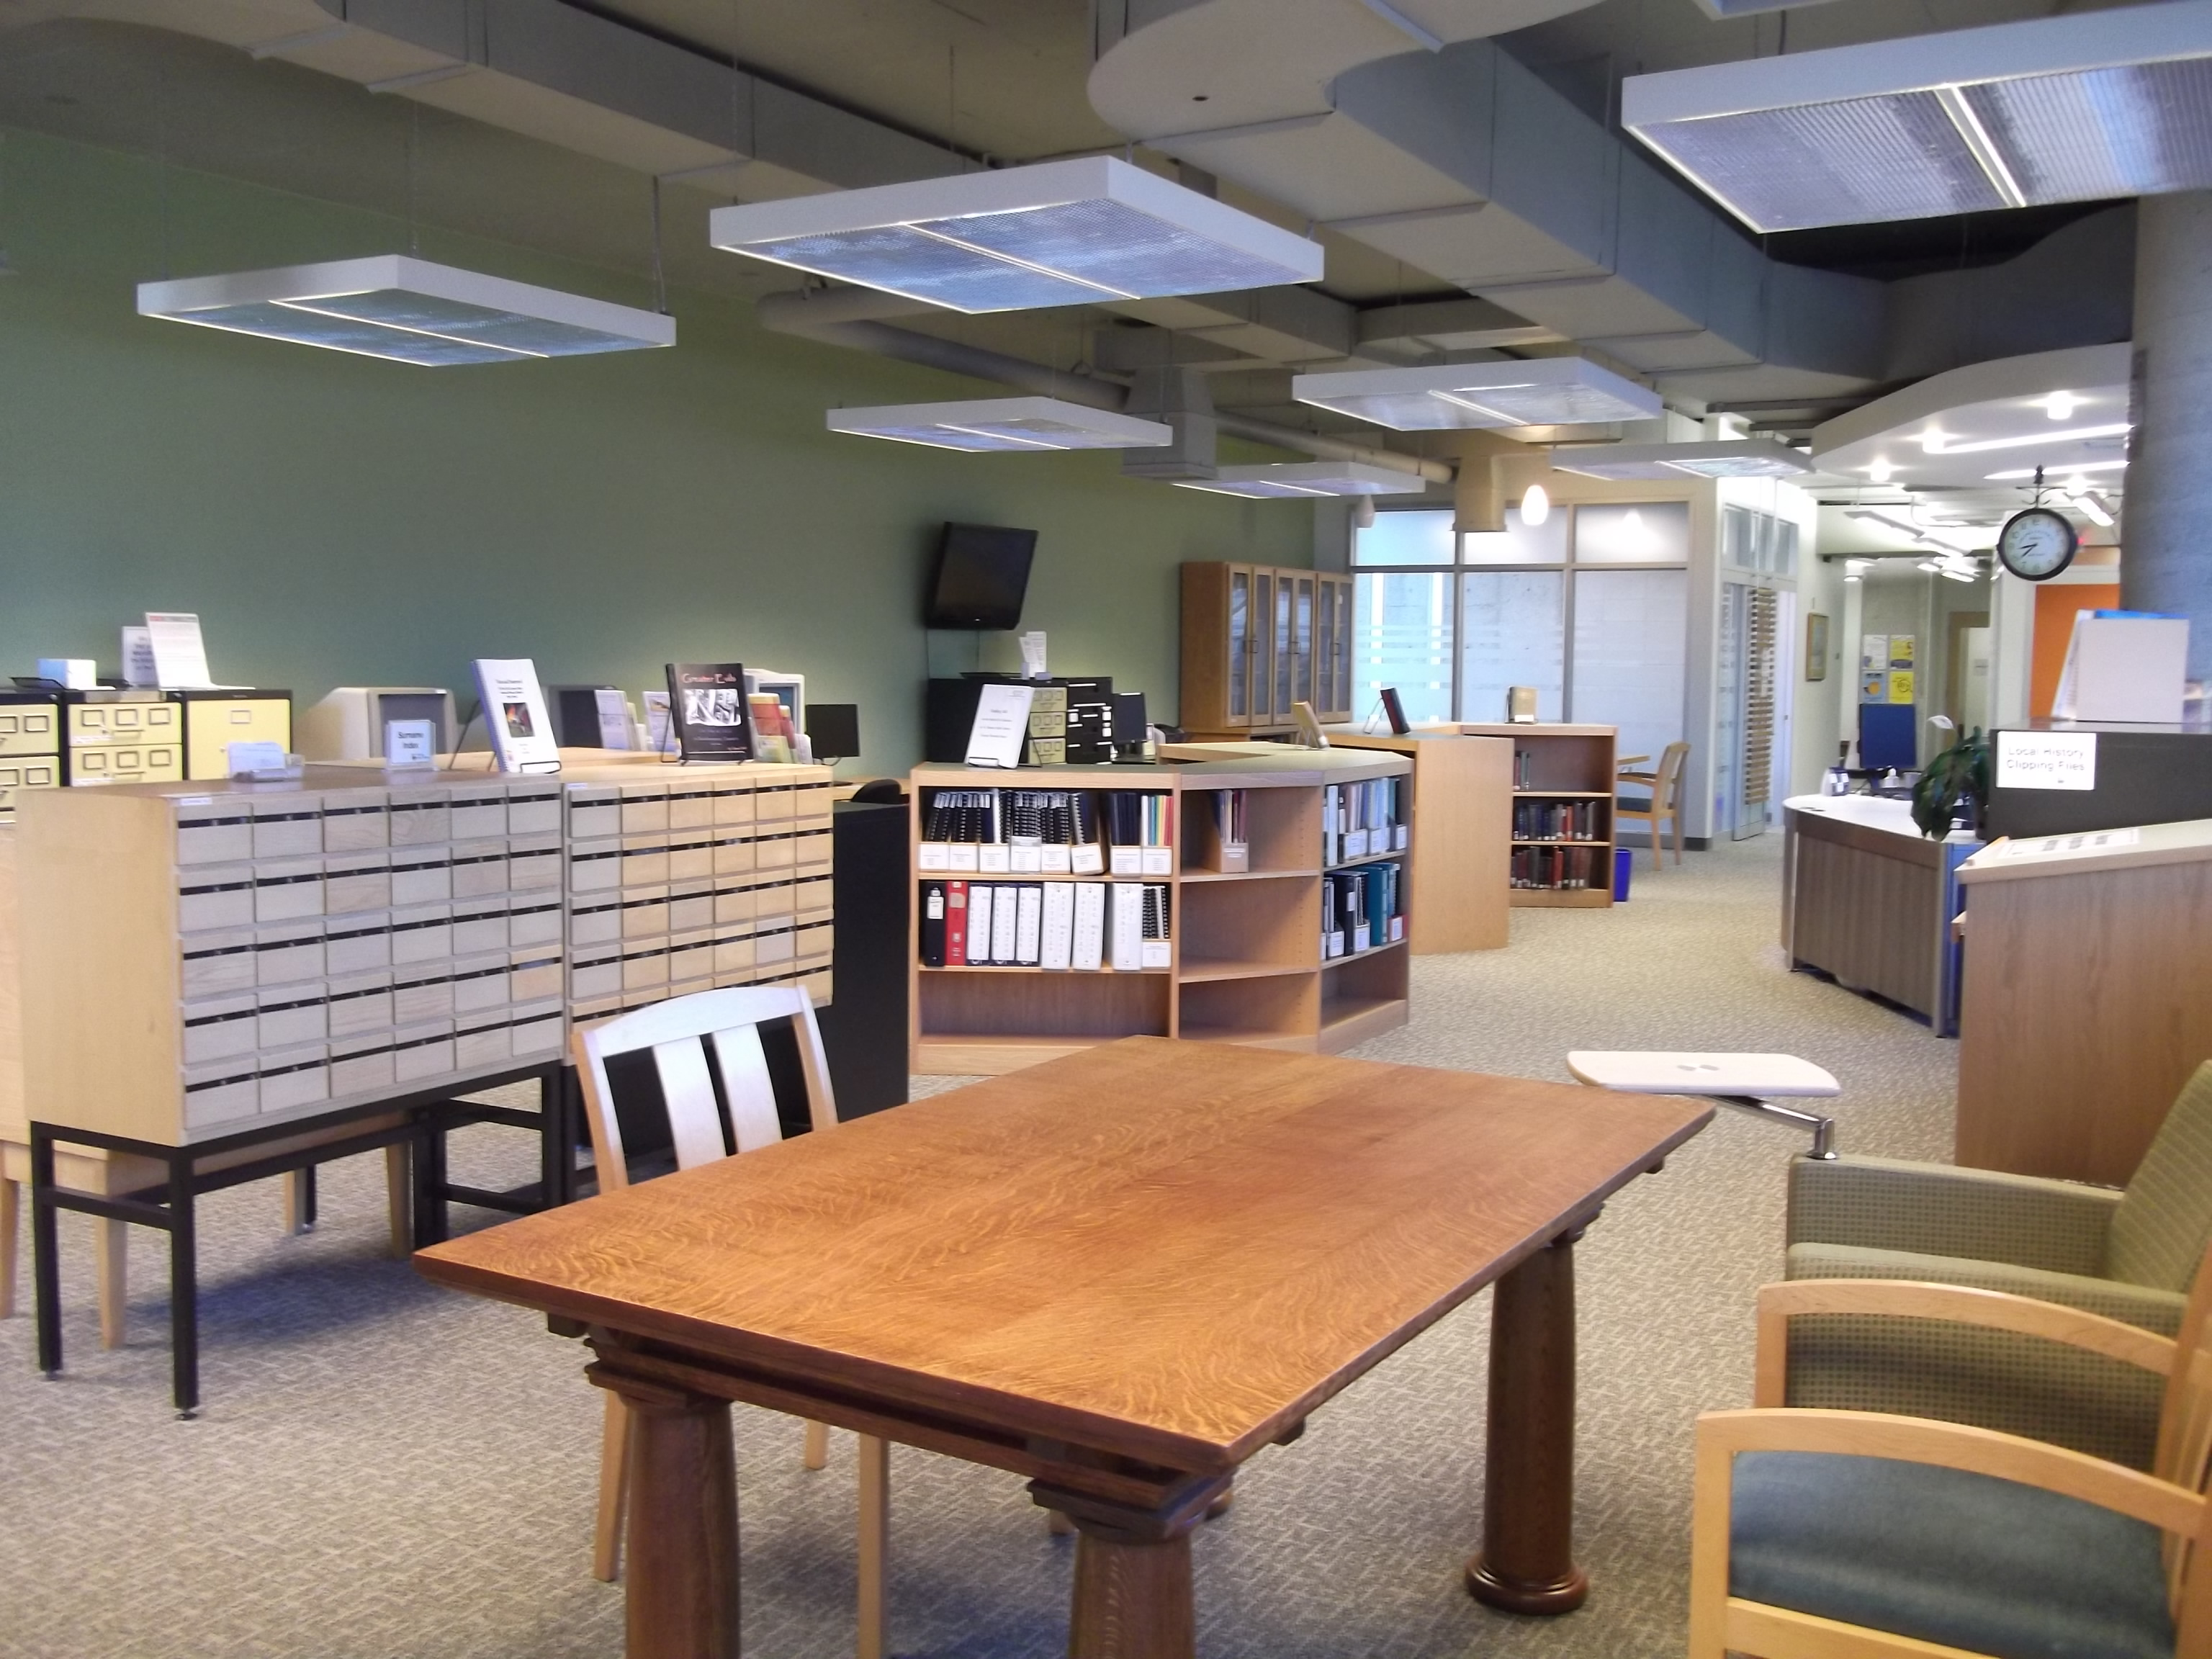 a large room with green walls, bookshelves, tables, chairs, and card catalogues